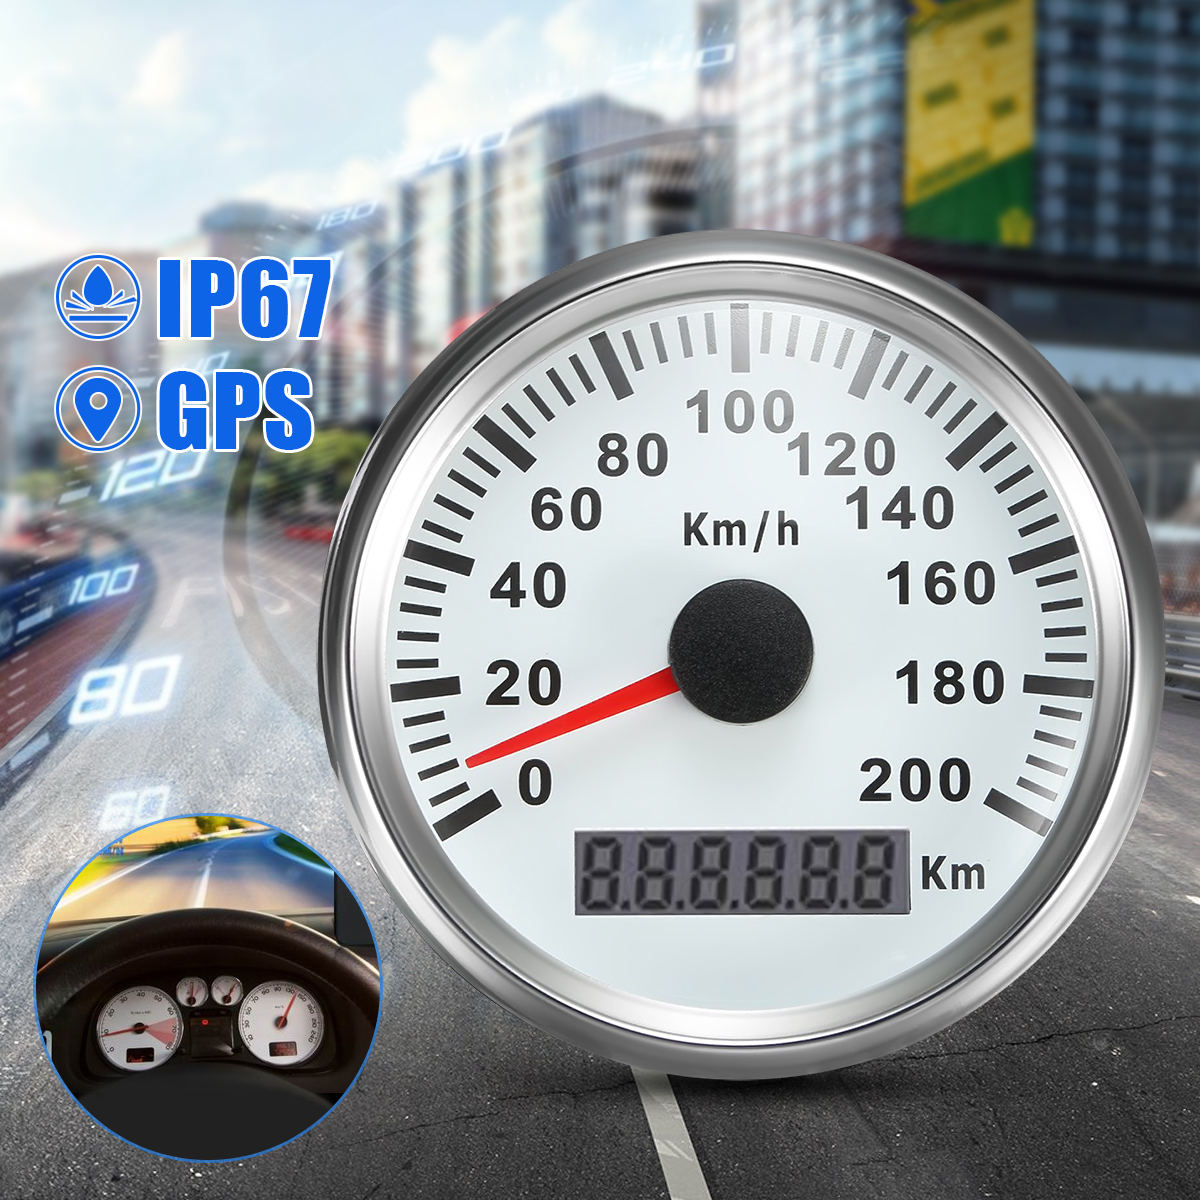 "White Stainless Steel Waterproof Auto Car GPS Speedometer 200KM/H Digital Gauge 200km 3.35"" Inch"